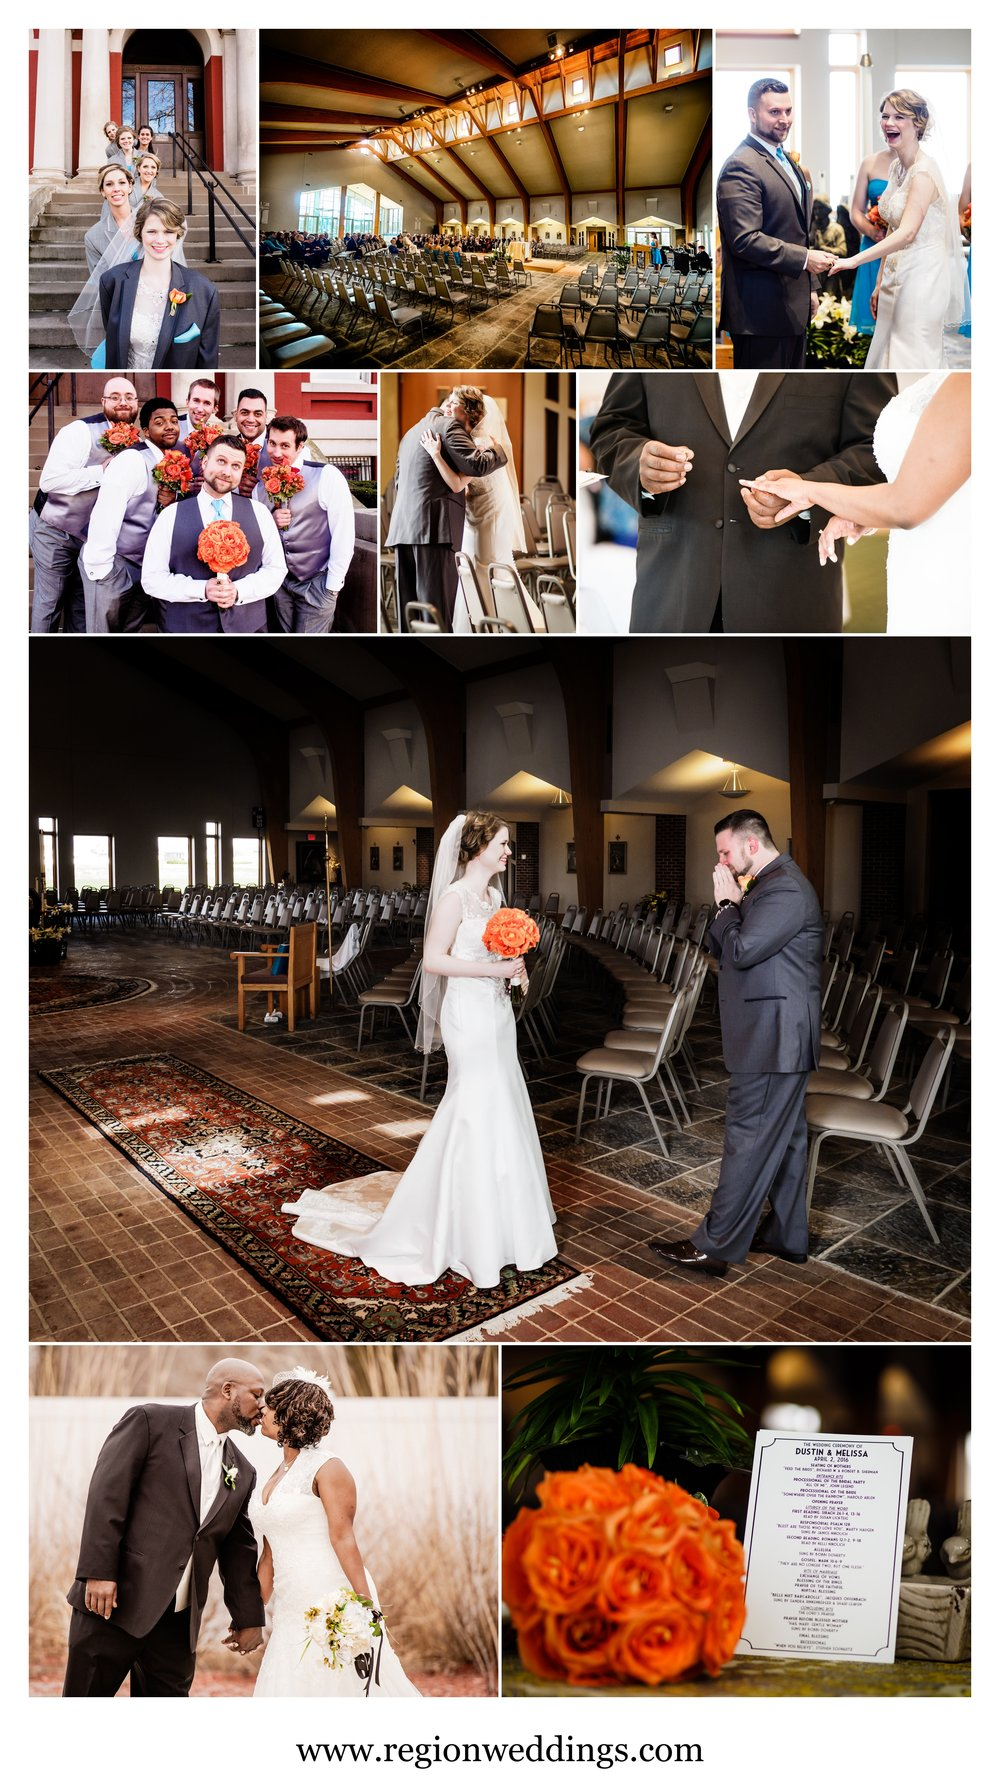 Spring wedding photos in Northwest Indiana in 2016.